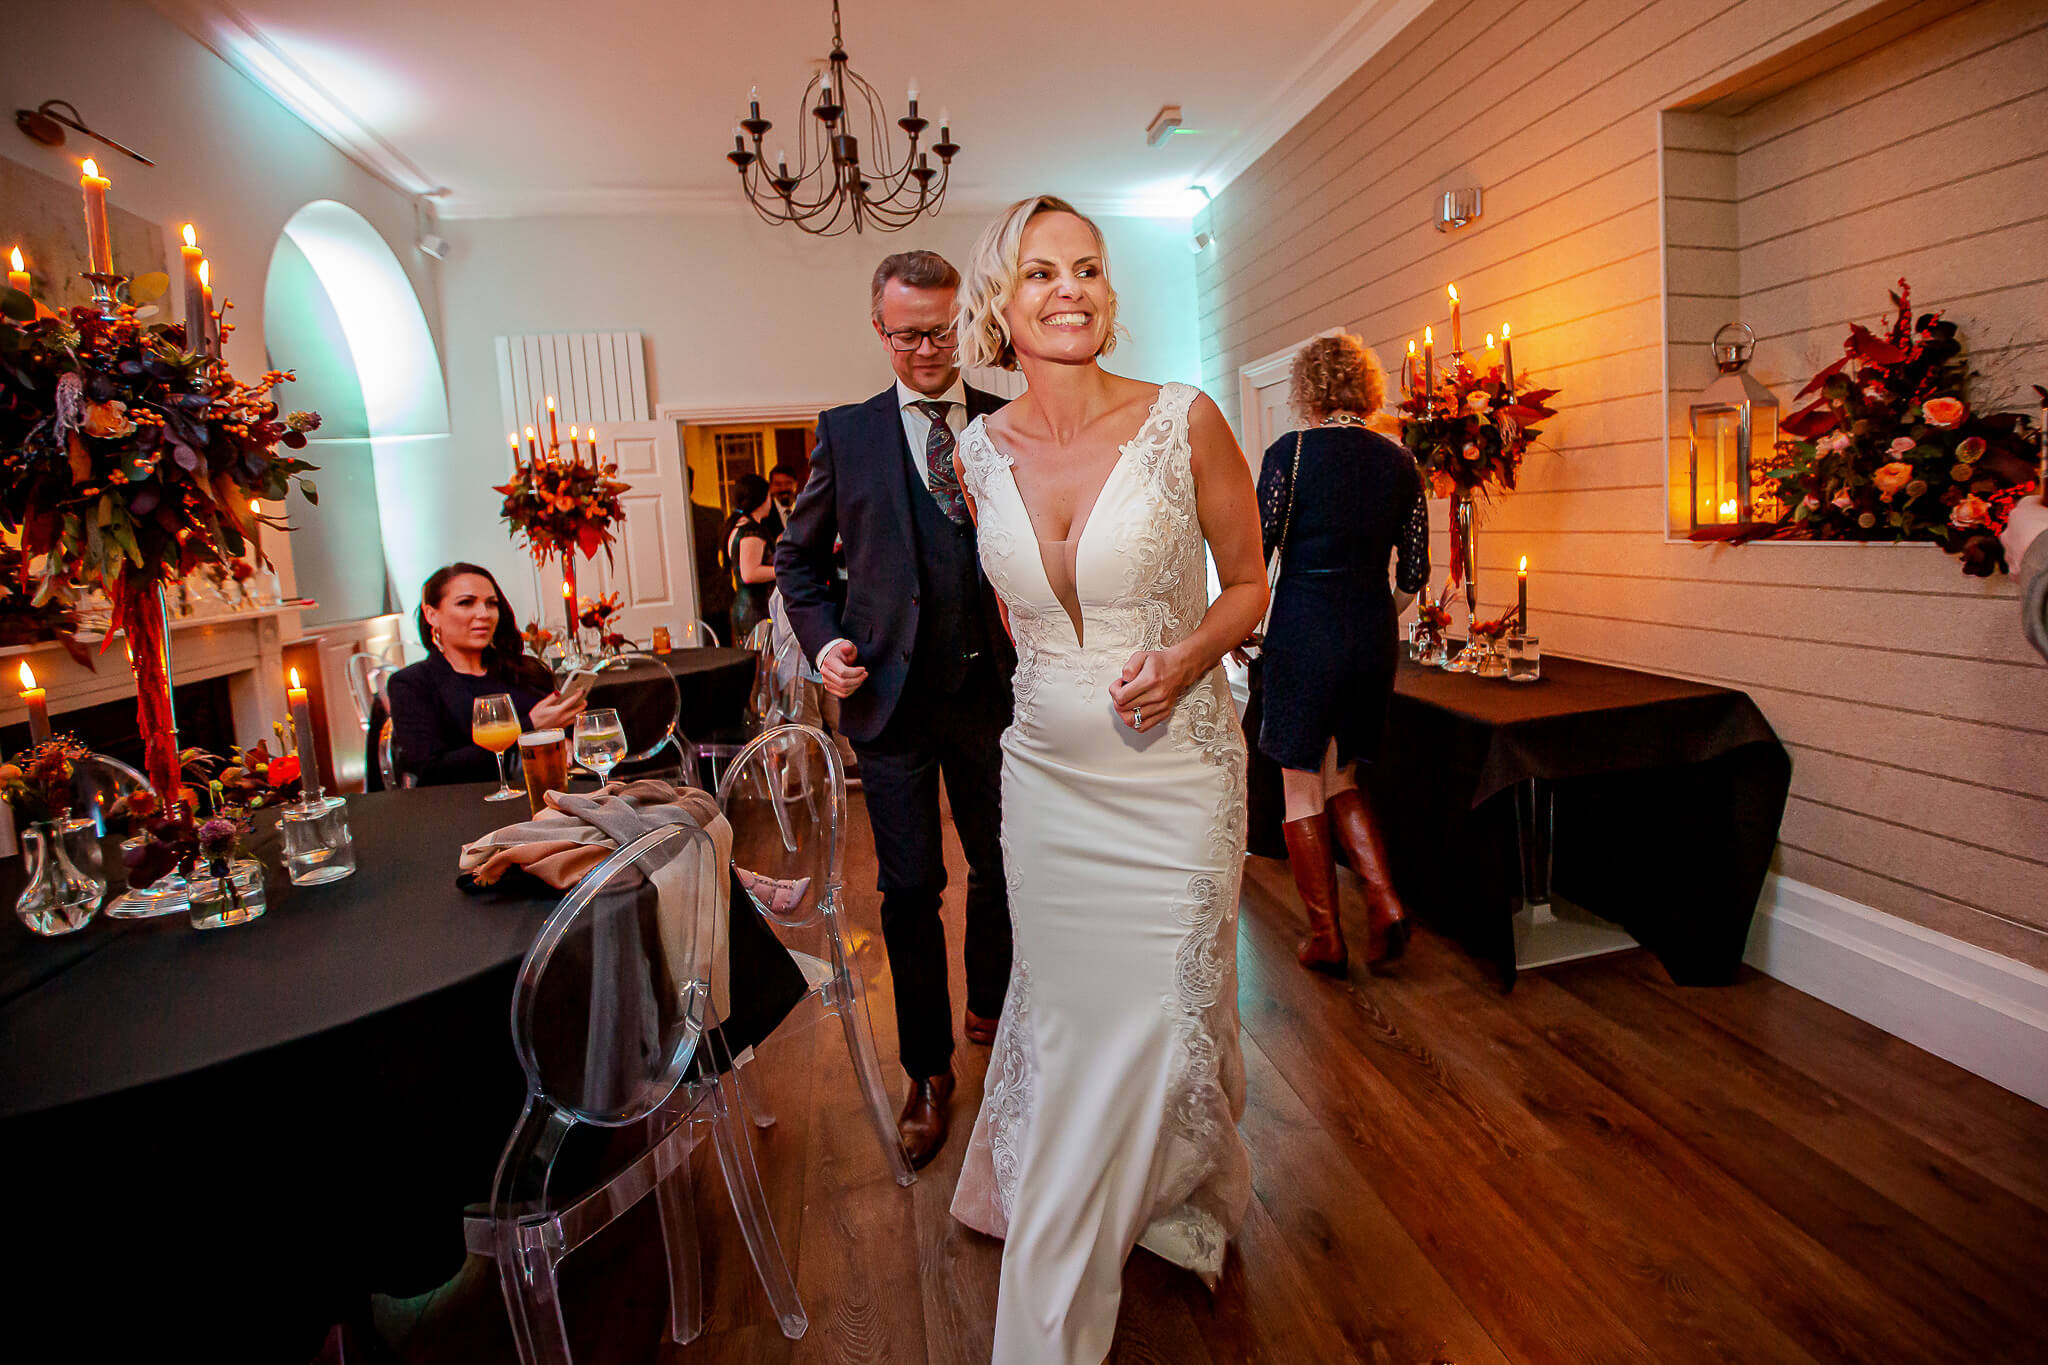 best-wedding-photographers-uk-europe-stanbury-photography-153